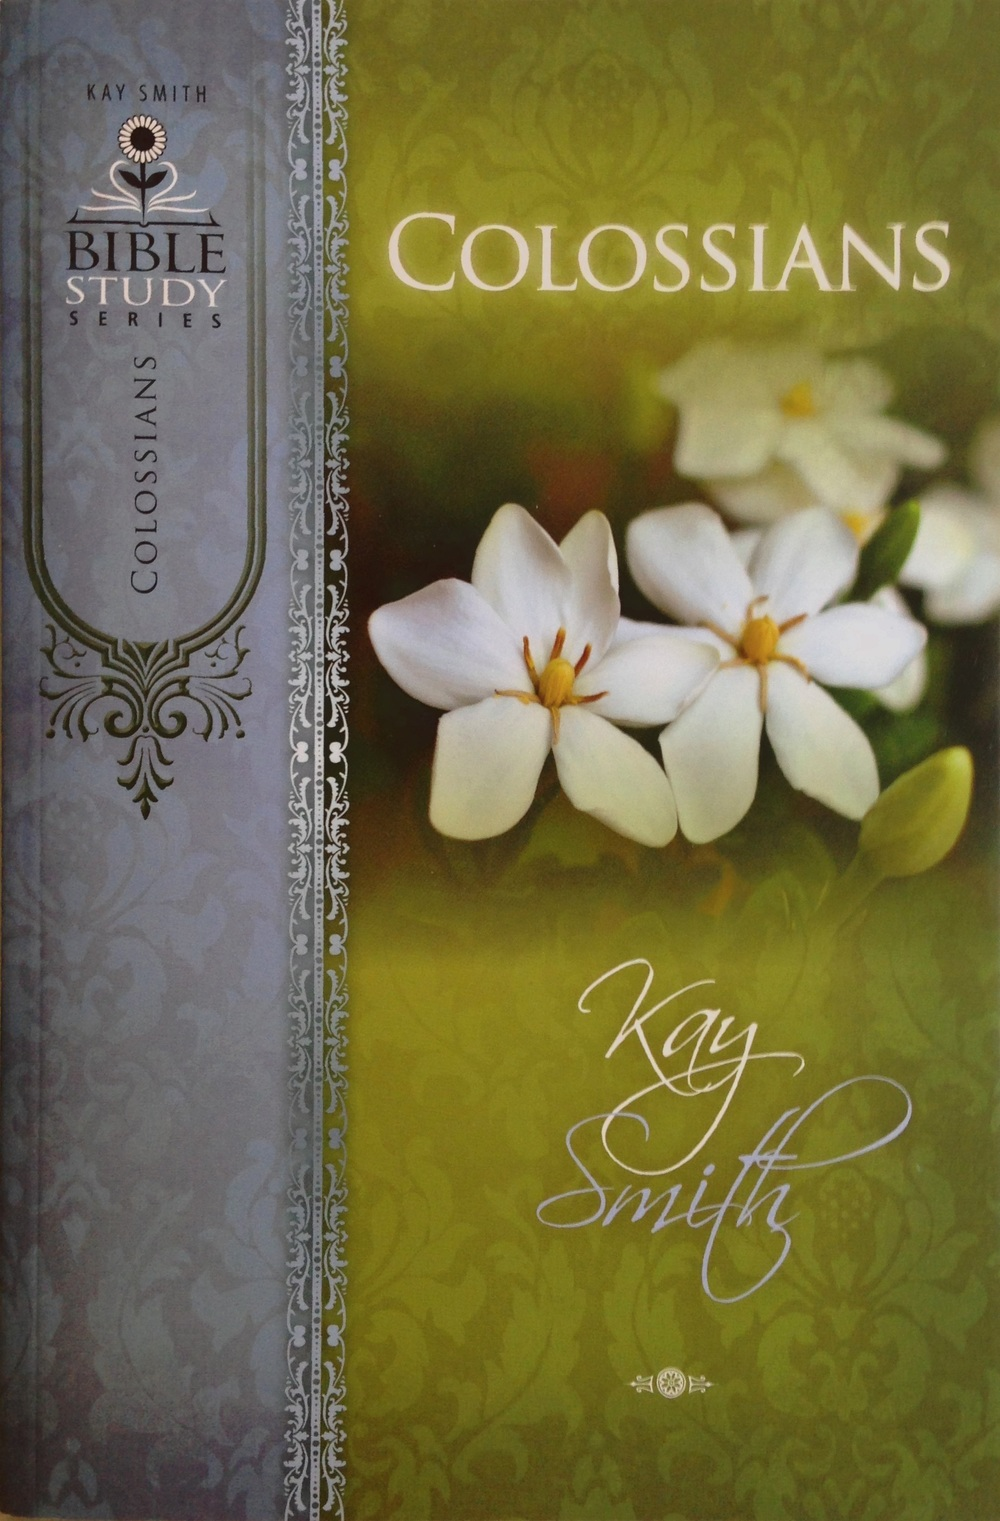 Colossians: The Epistle of Paul to the Colossians